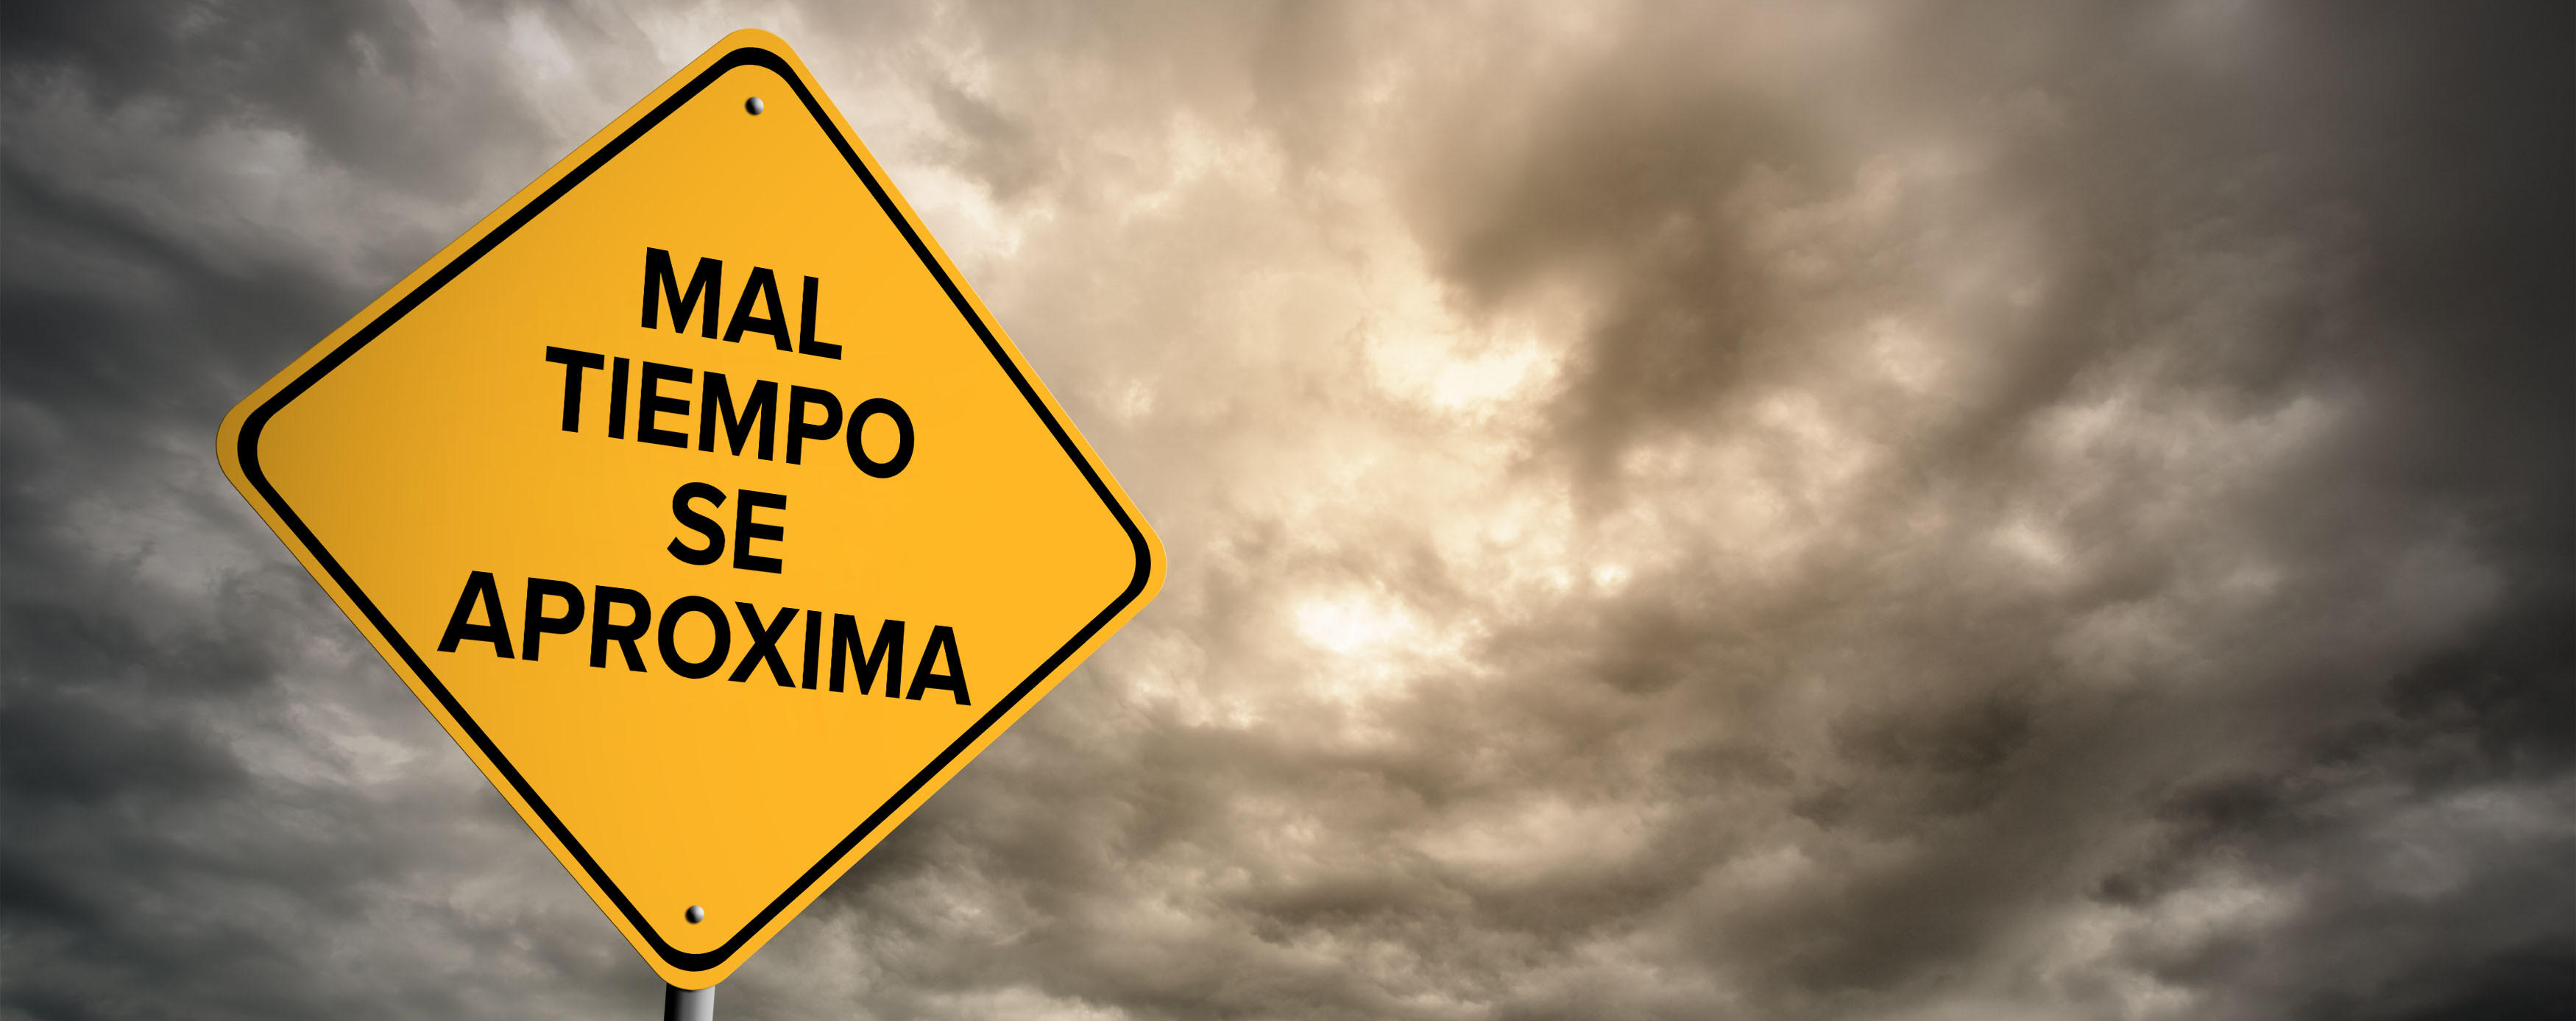 Dark clouds behind yellow emergency sign for stormy weather ahead